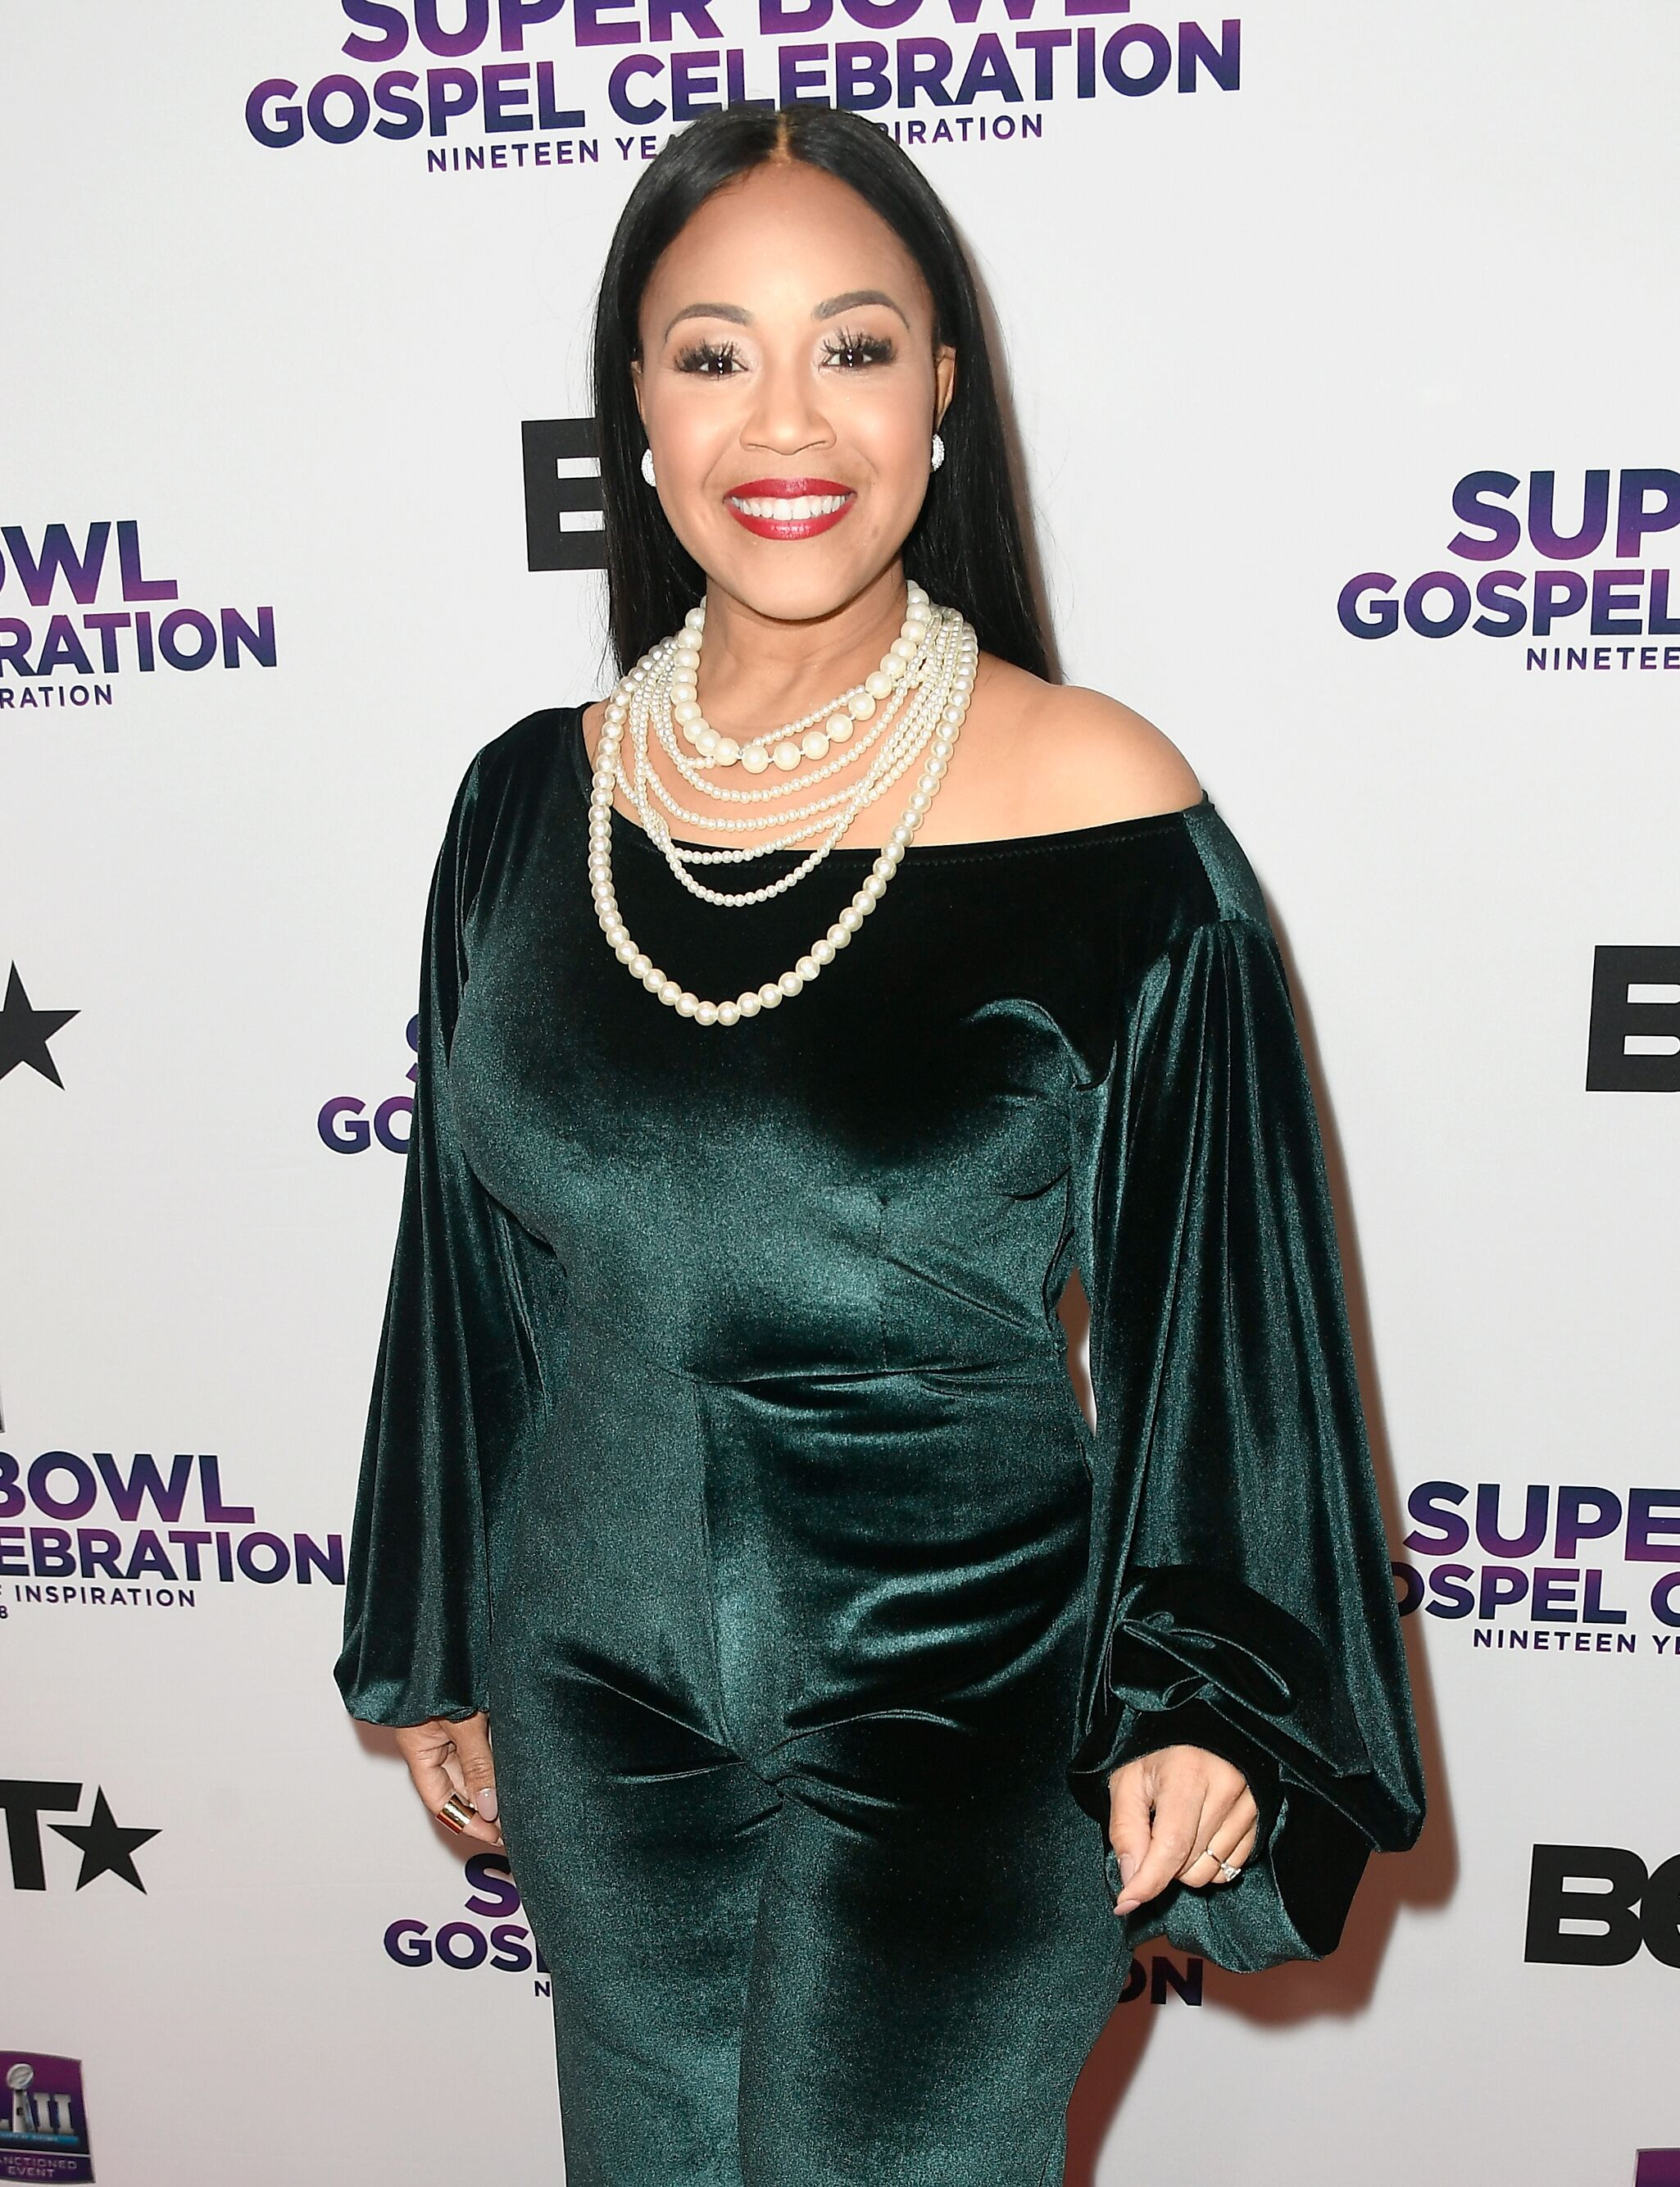 Erica Campbell at BET Presents 19th Annual Super Bowl Gospel Celebration at Bethel University on February 1, 2018 | Photo: Getty Images